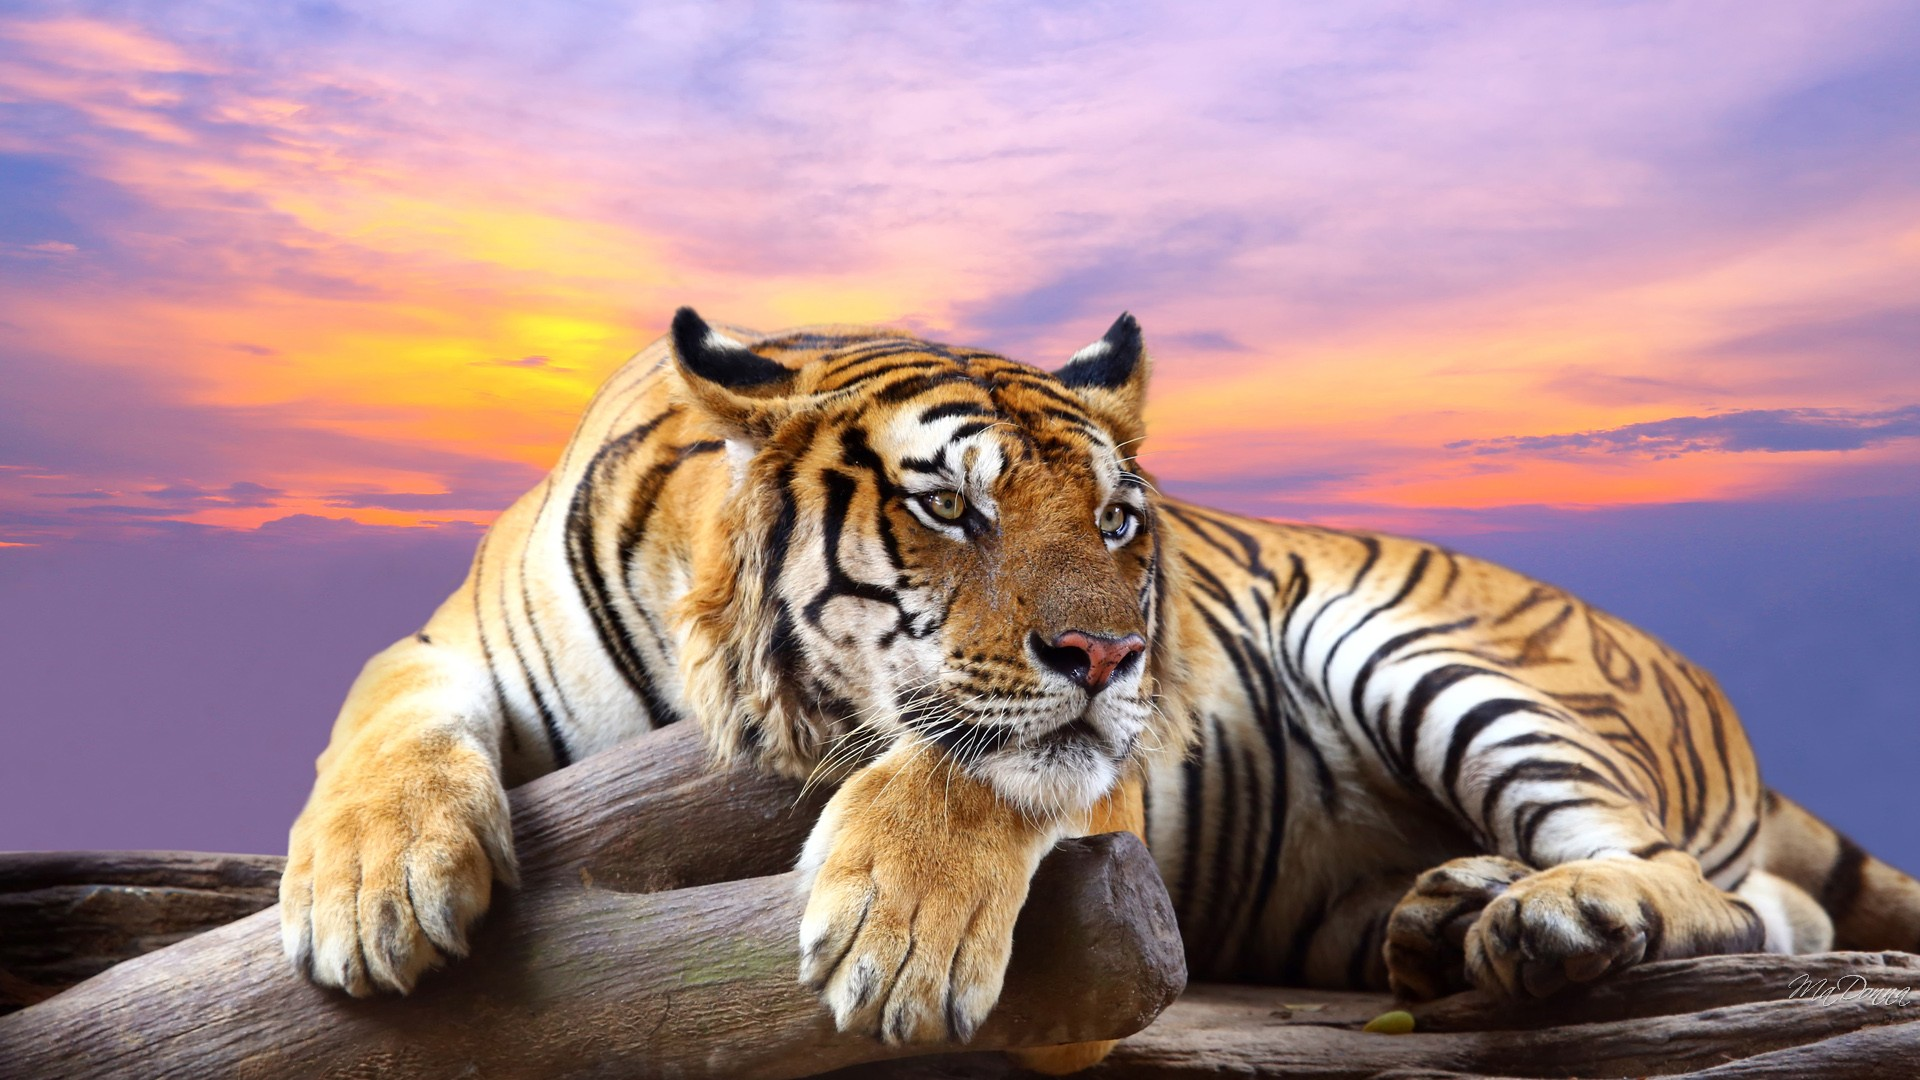 HD Tiger Wallpaper - HD Wallpaper Download